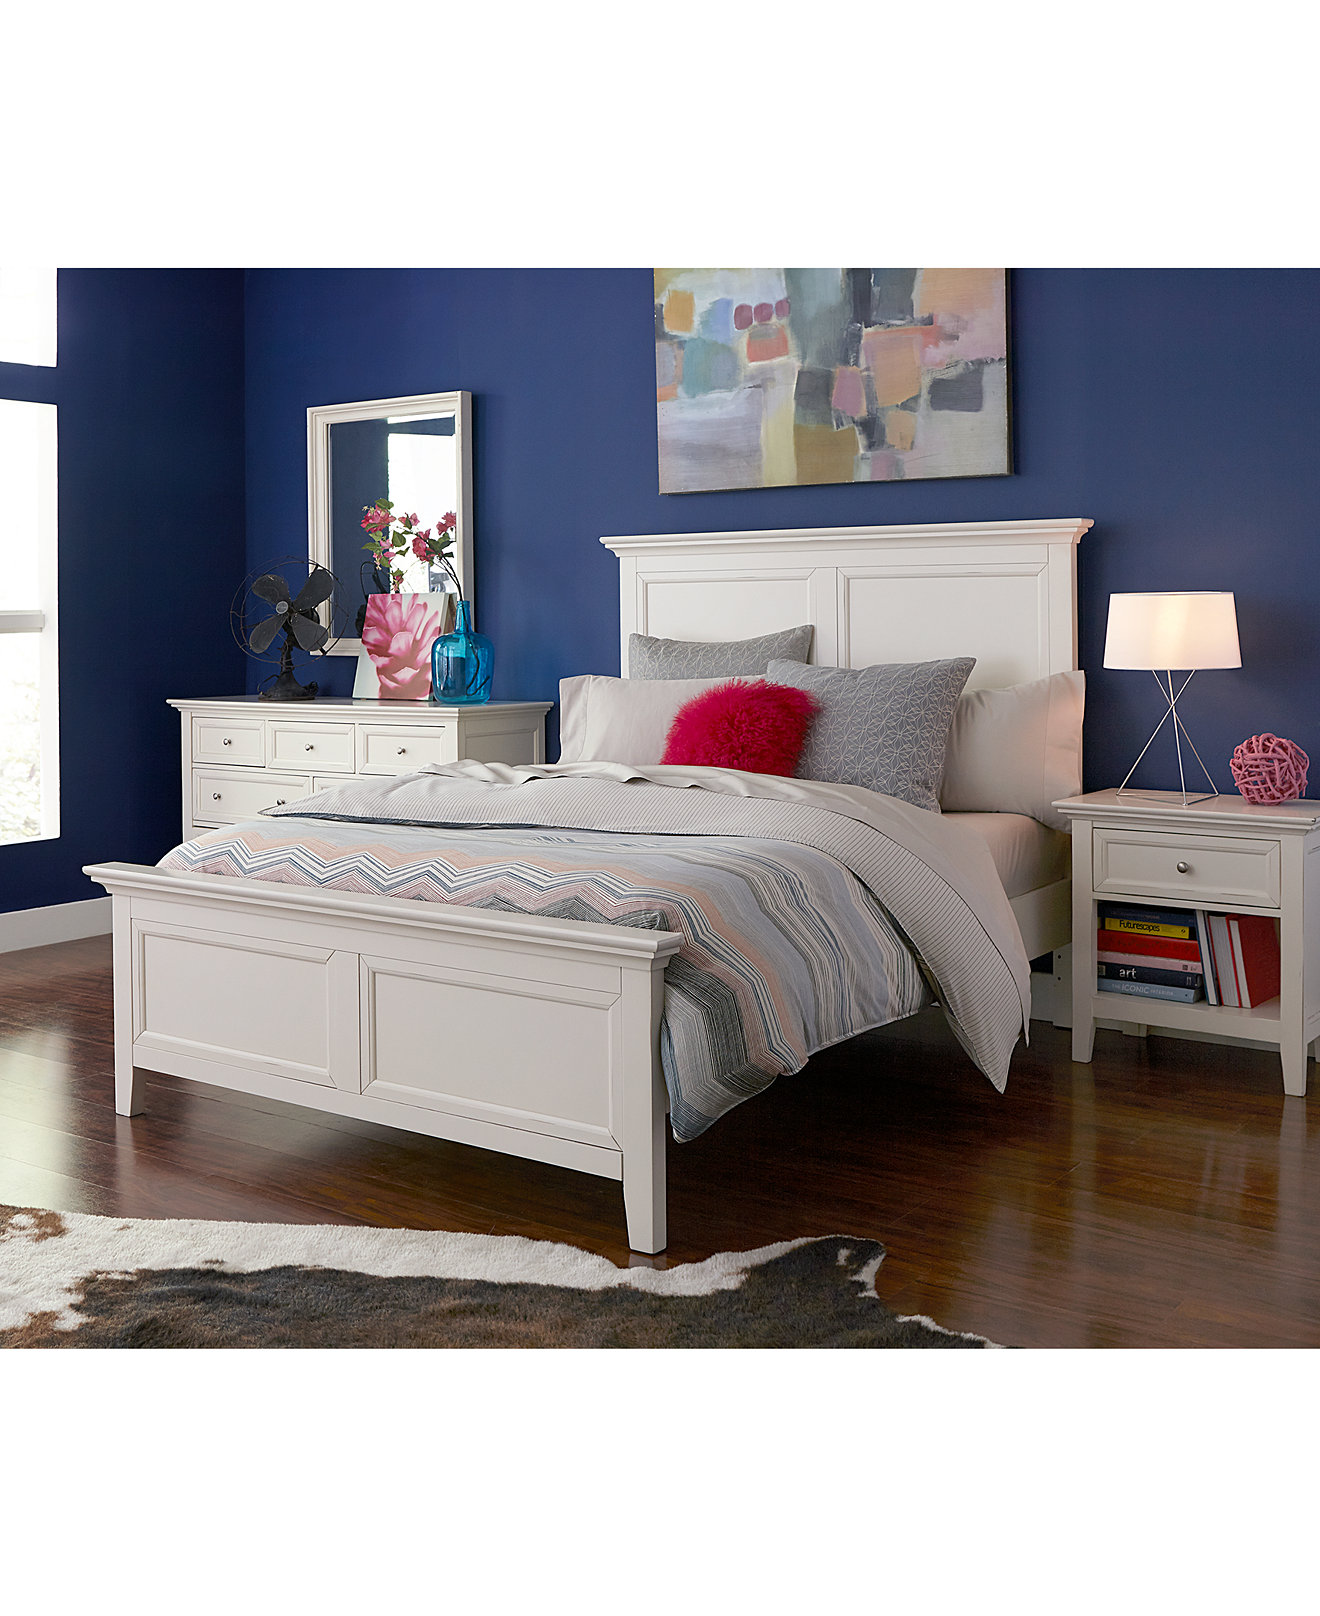 Macys Furniture Bedroom Loft Bed Shop For And Buy Loft Bed Online Macys